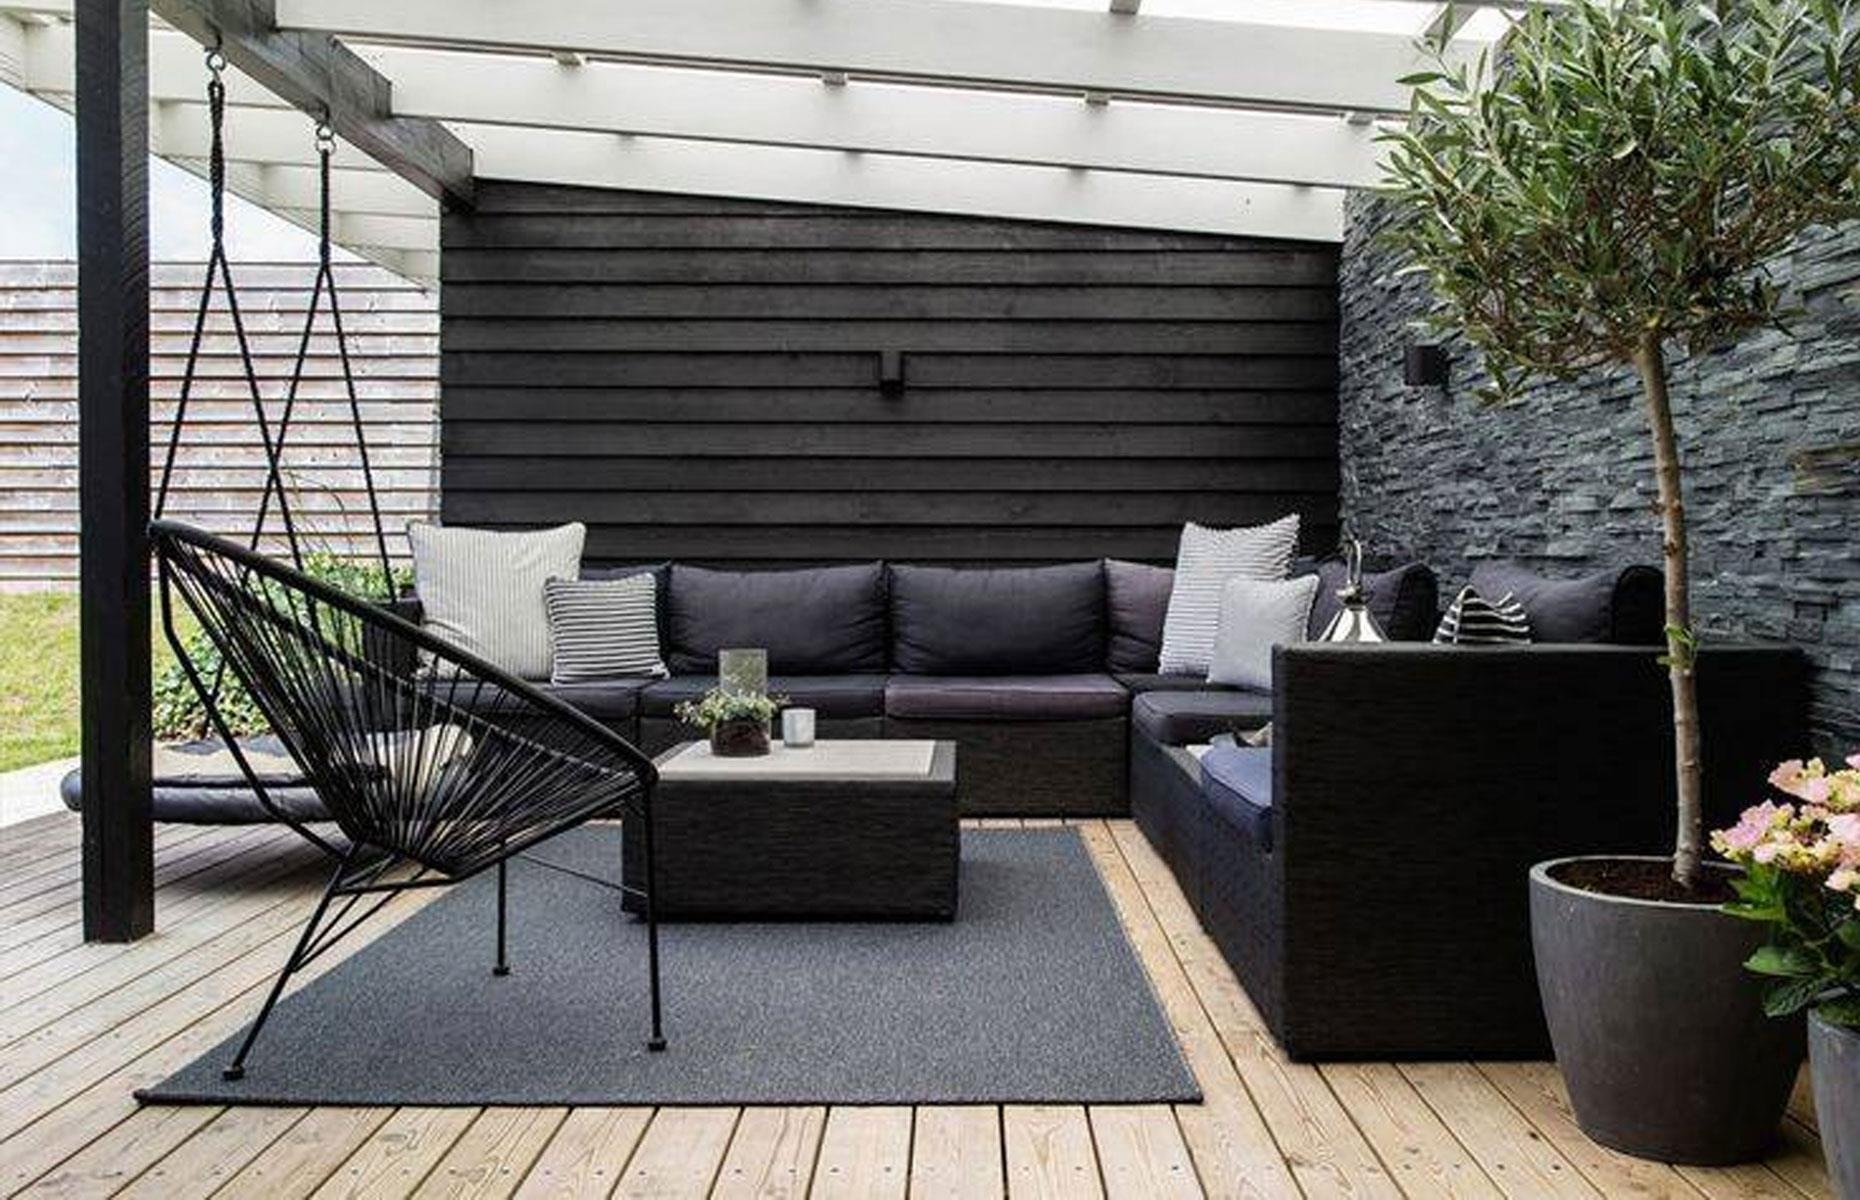 Patio And Decking Ideas To Create Your Own Summer Terrace